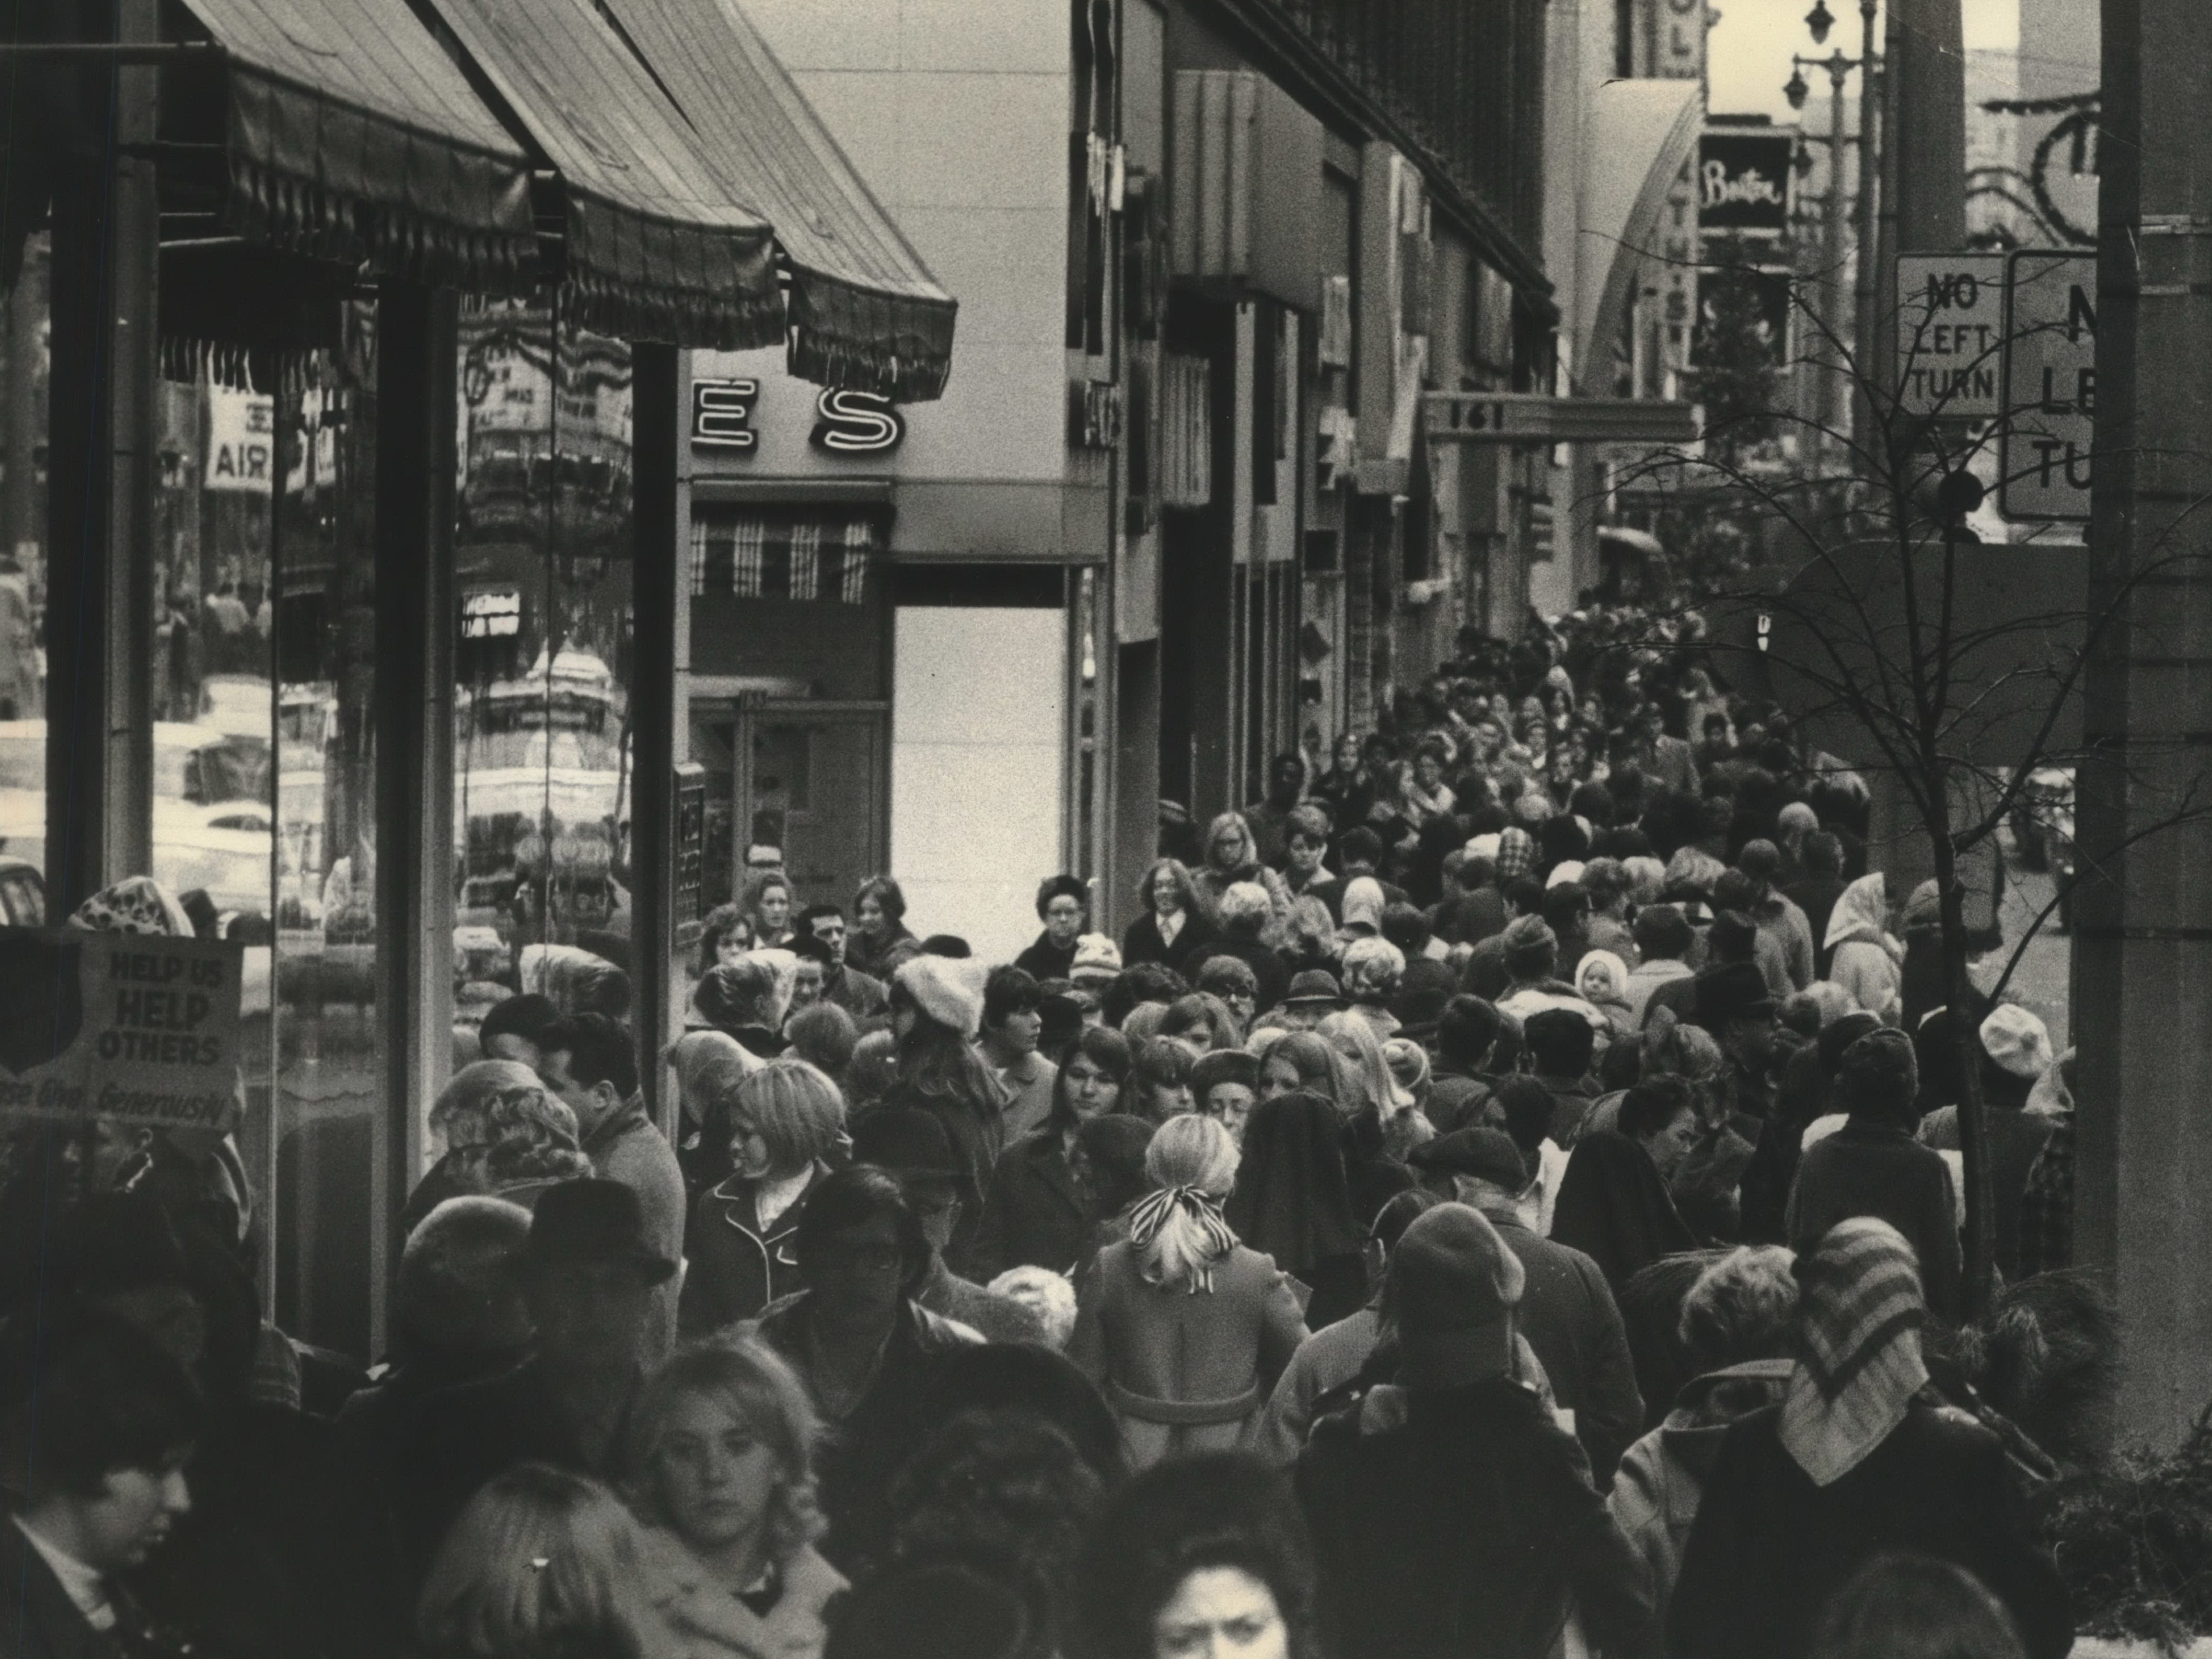 Bustling shoppers jam the sidewalks along W. Wisconsin Ave. on Nov. 29, 1968, the Friday after Thanksgiving that year. This photo was published in the Nov. 30, 1968, Milwaukee Sentinel.